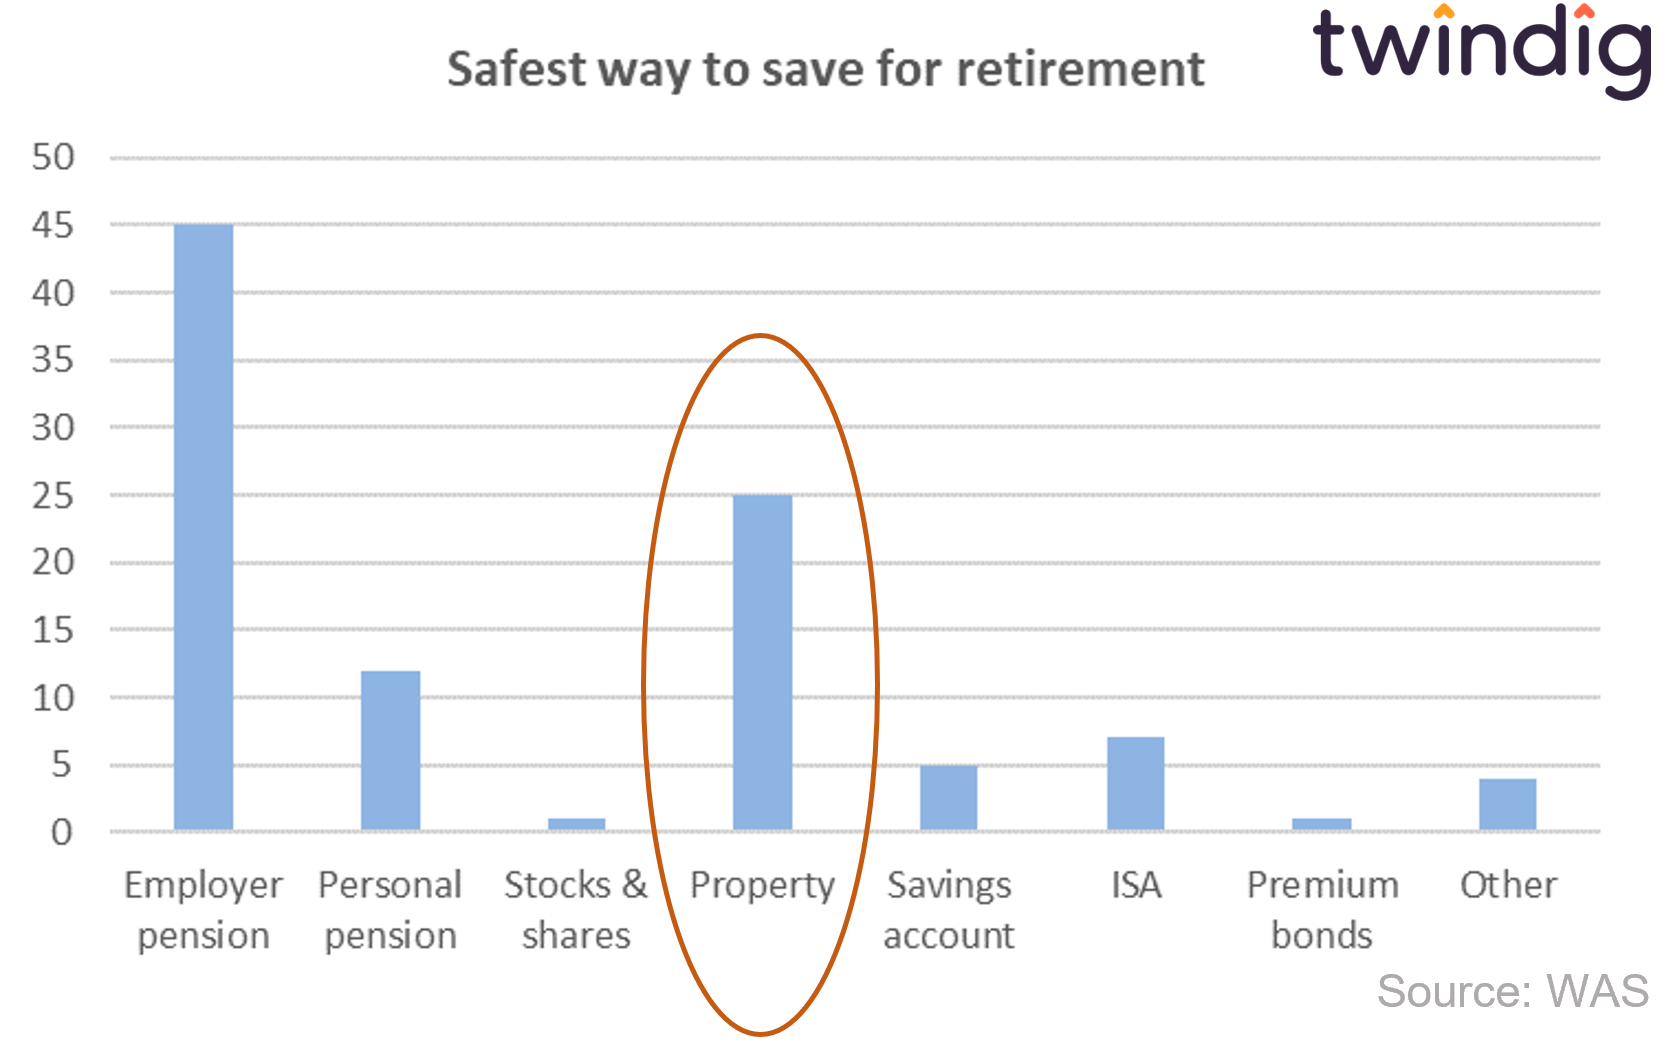 graph chart to show safest way to save for retirement Wealth and assets survey WAS twindig anthony codling